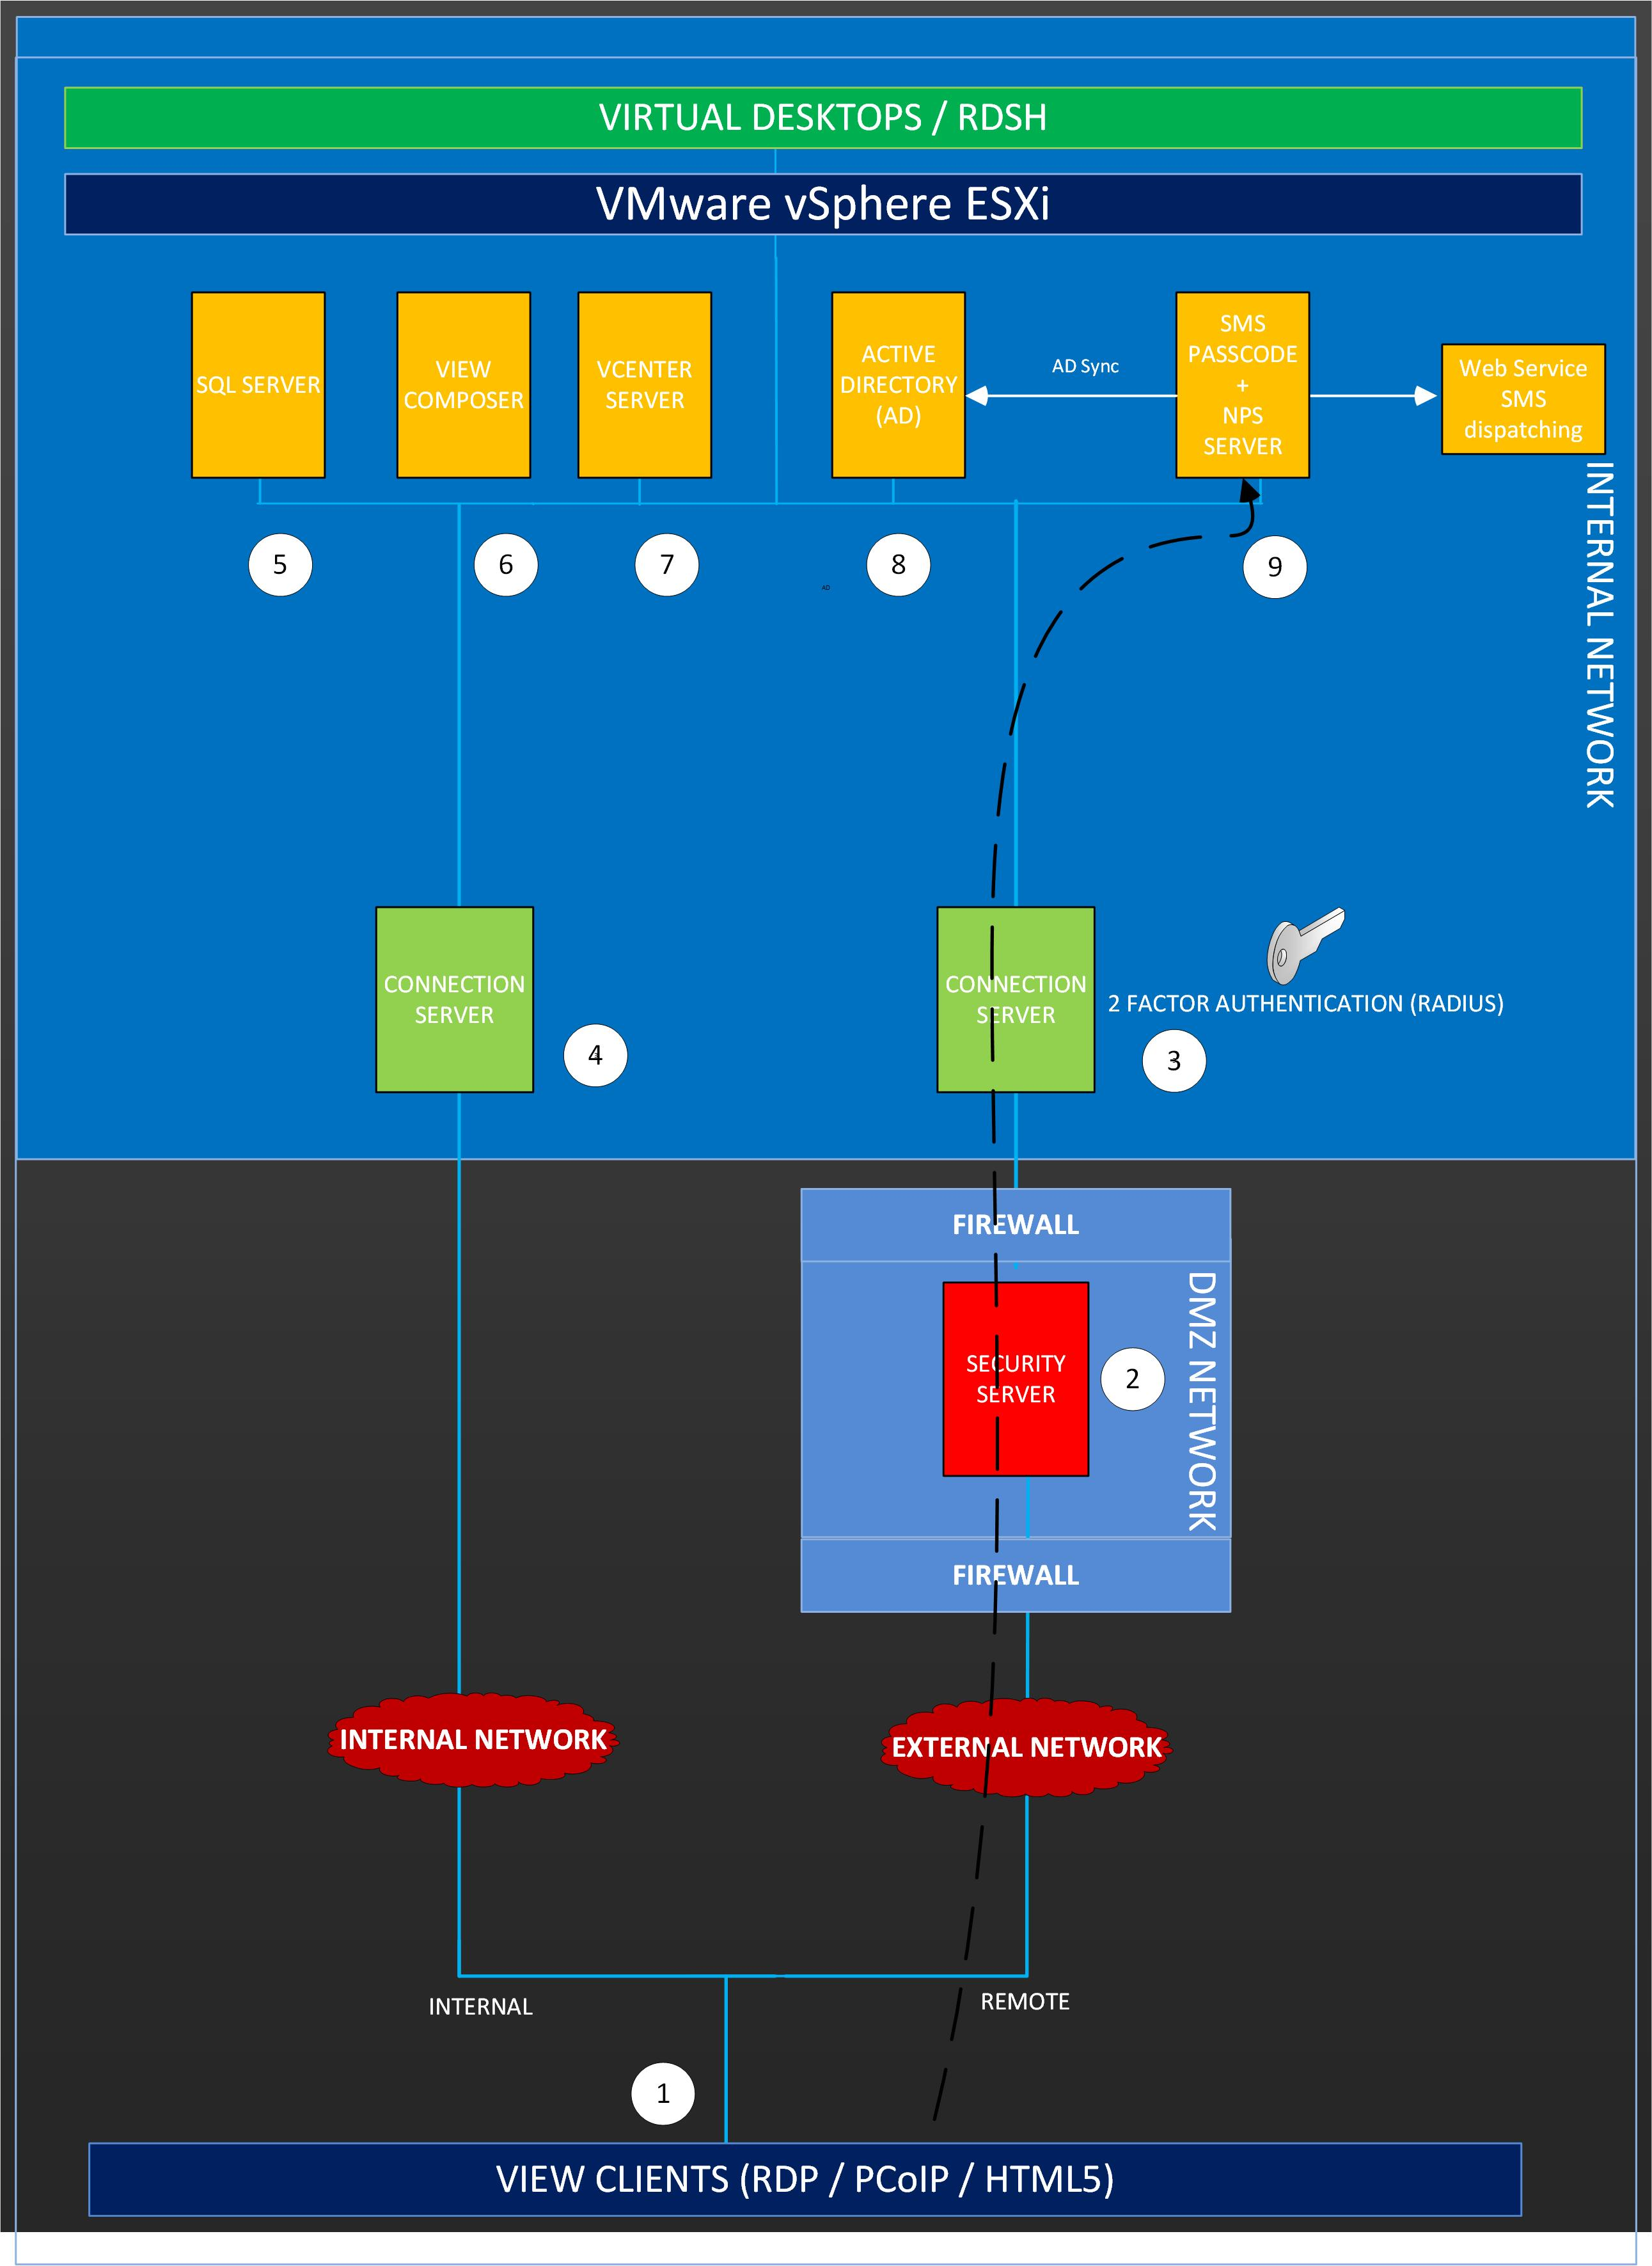 Tested SMS PASSCODE multi-factor authentication with VMware Horizon